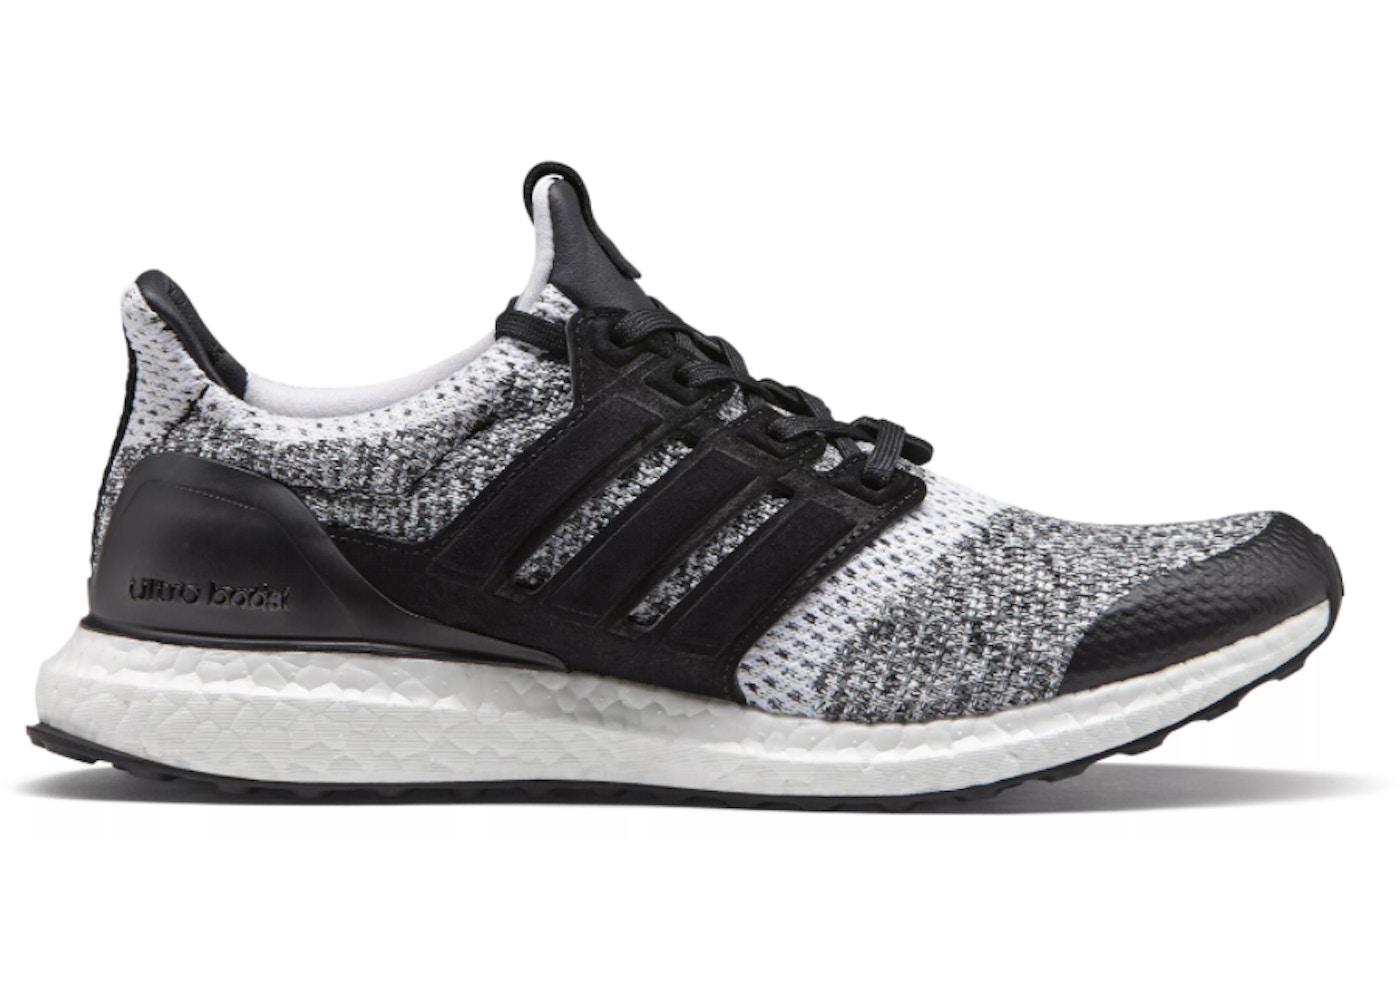 677fbe19b88e7b Buy adidas Ultra Boost Shoes   Deadstock Sneakers